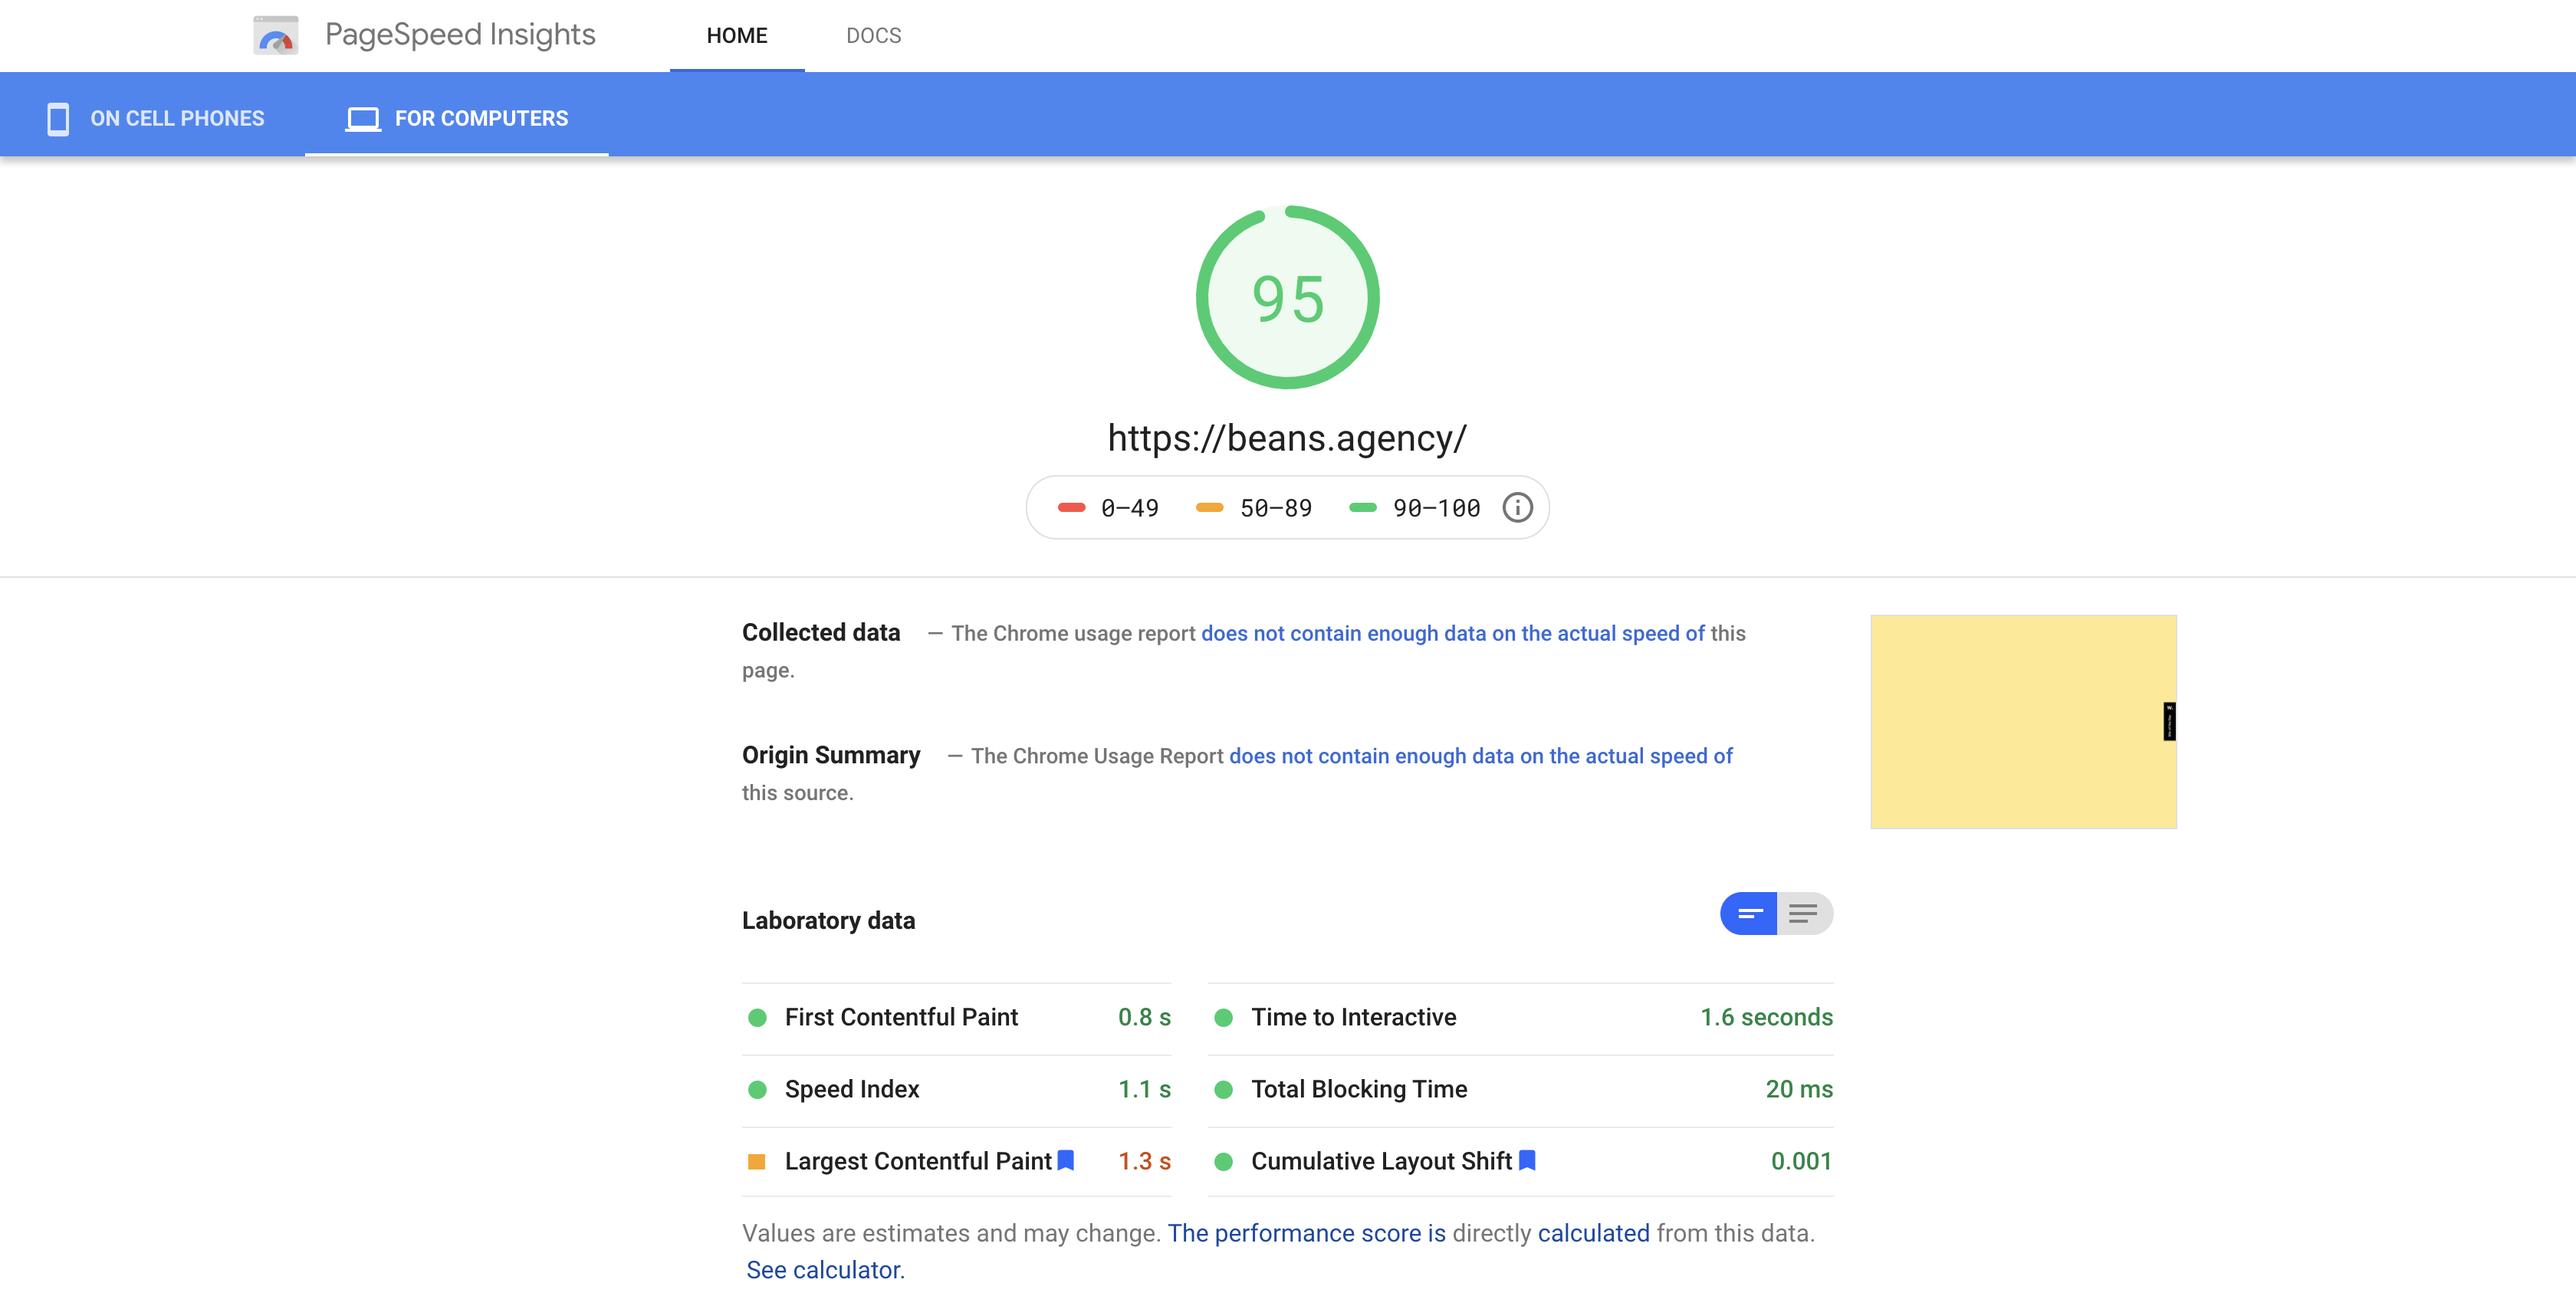 pagespeed-insights-interface.png